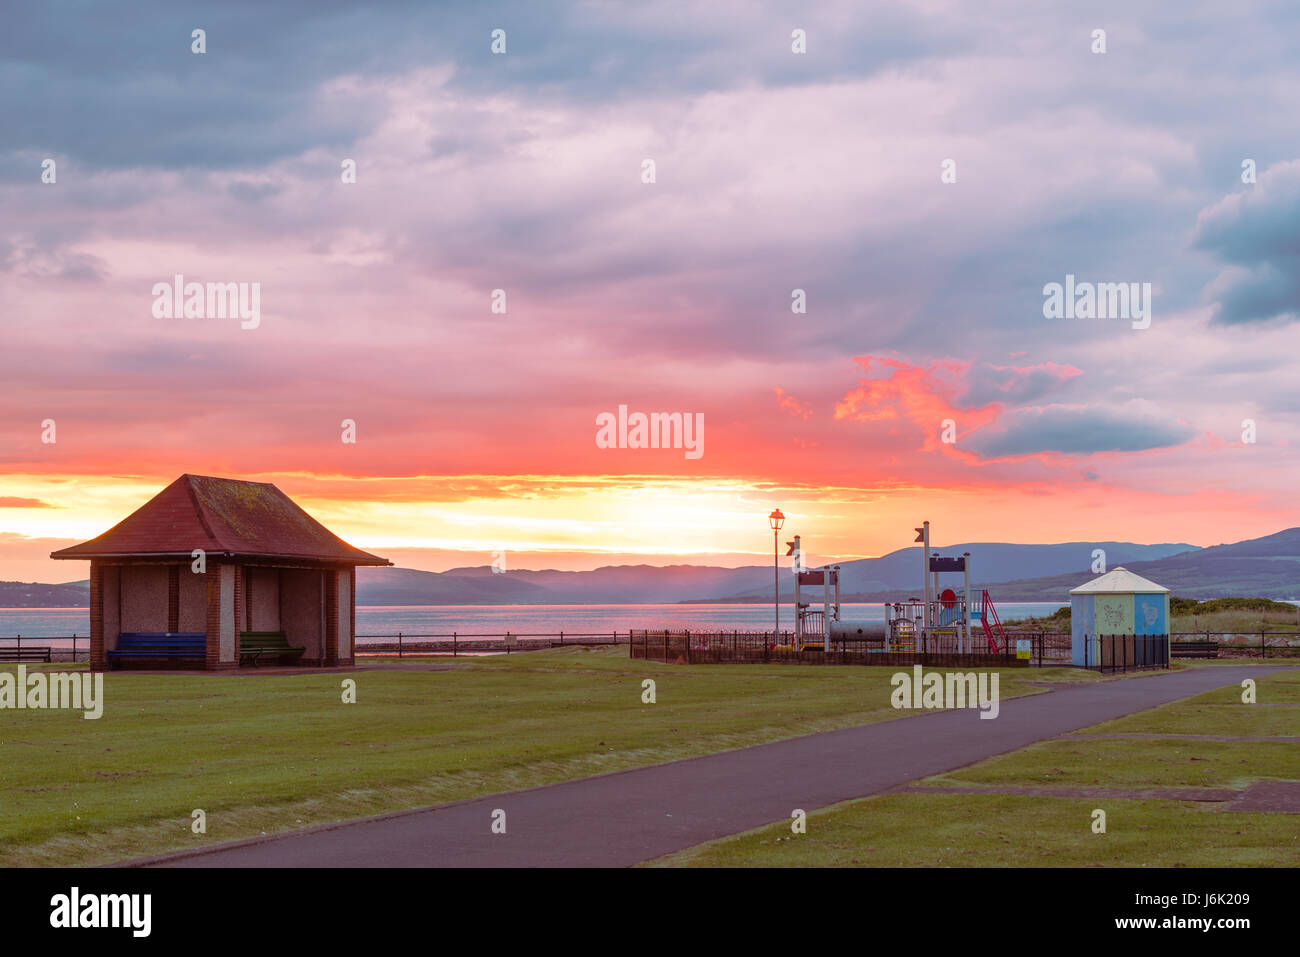 Sunset at Playpark at Aubery Cres largs. Situated in the North End of the Town. - Stock Image